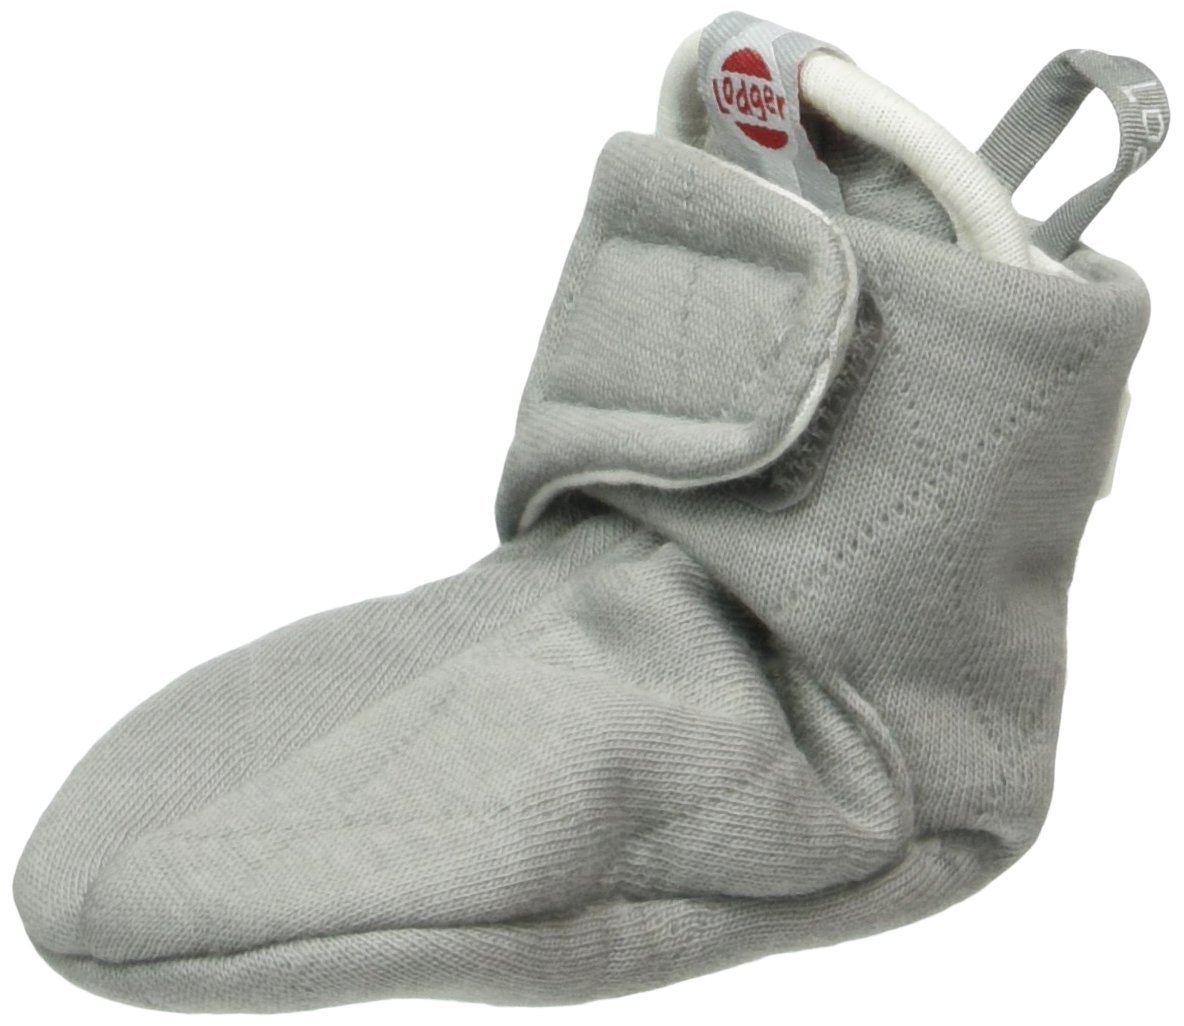 Lodger Cotton Quilt Baby Booties (0-3 Months, Grey) SLCTH6007048 0-3